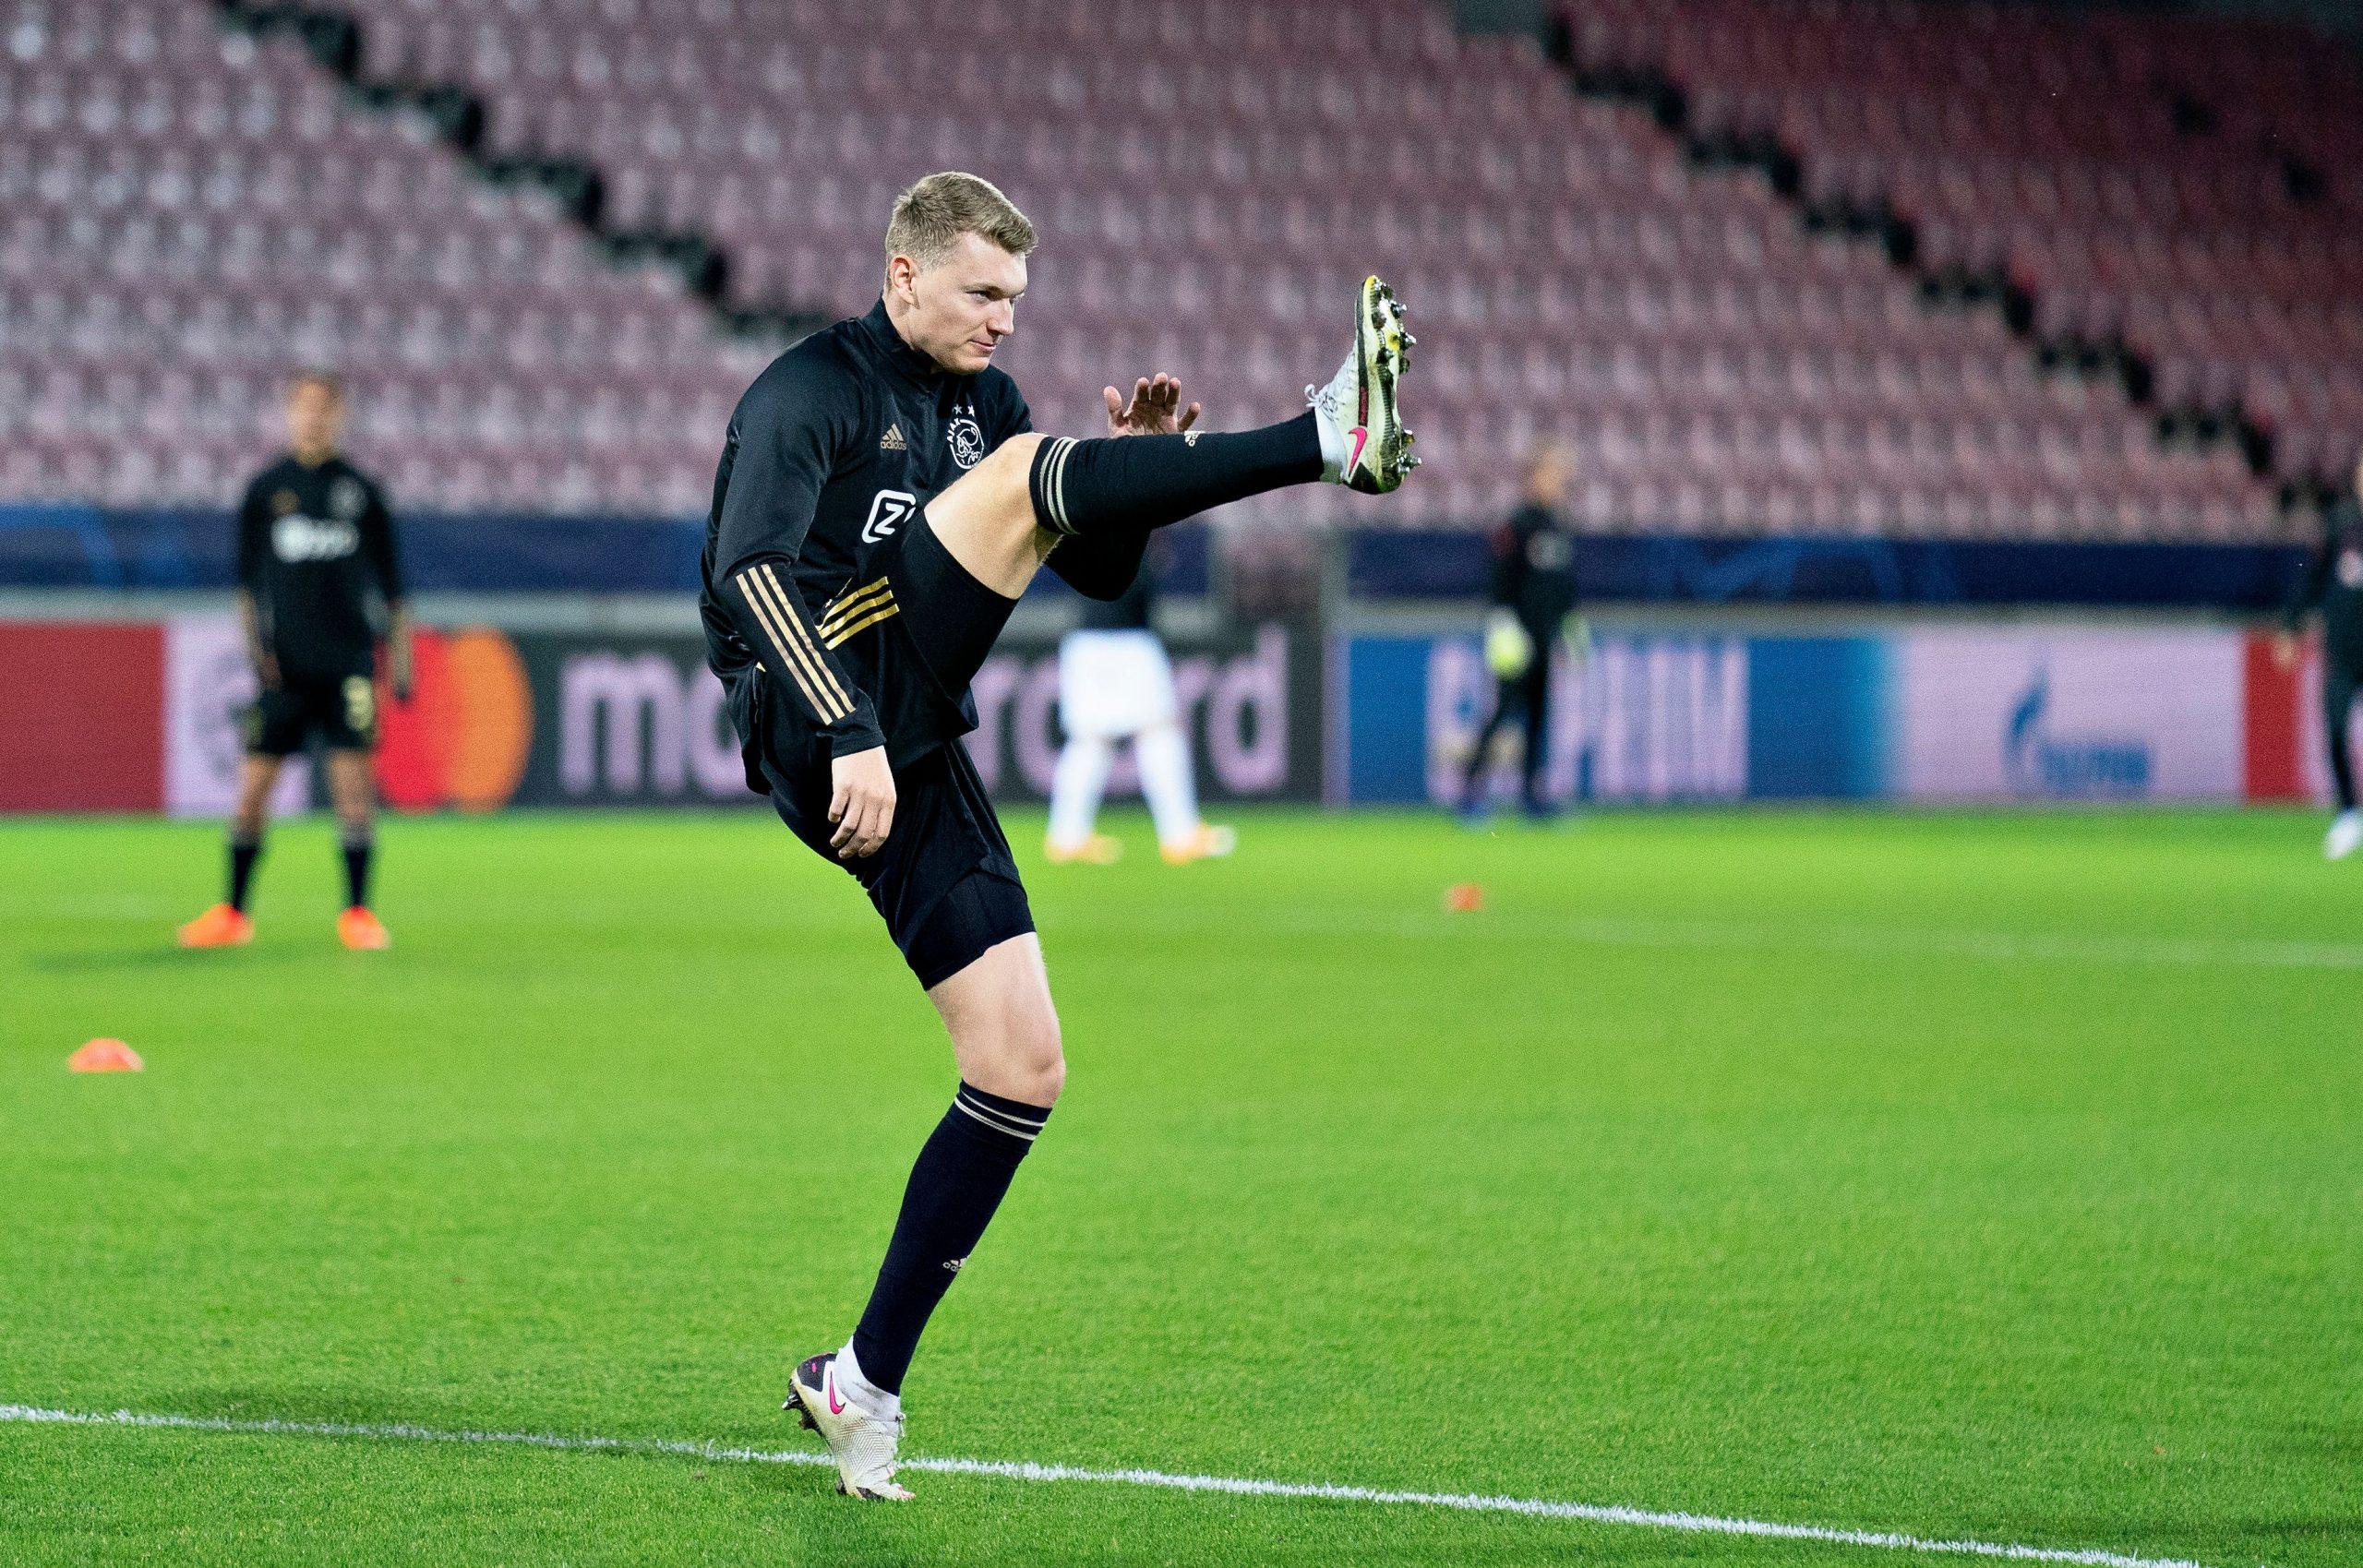 Ajax's Dutch defender Perr Schuurs warms up for Ajax before a UEFA Champions League game. (GETTY Images)